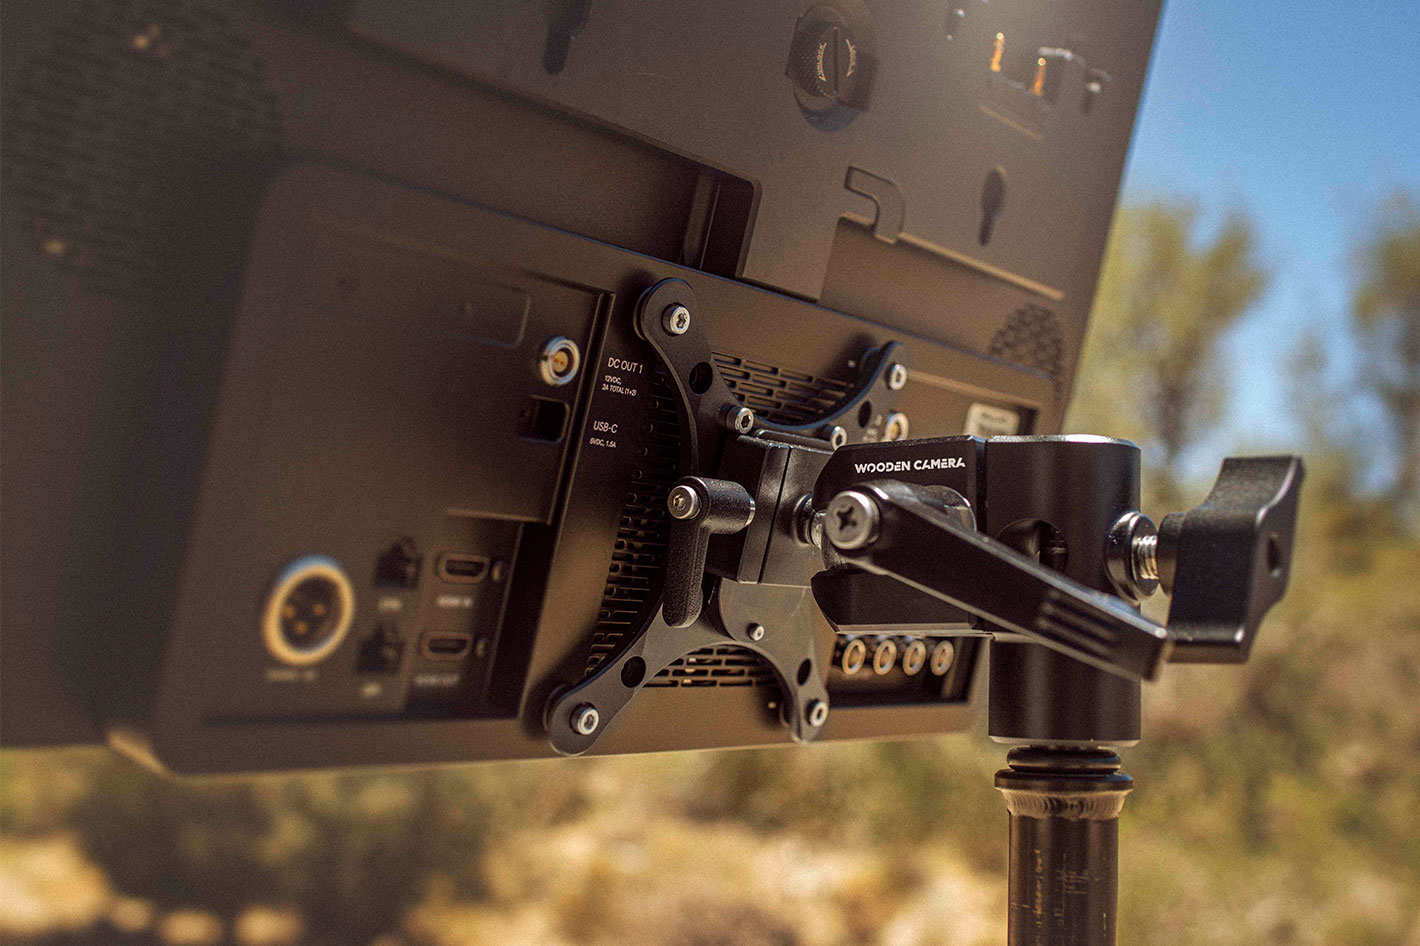 Wooden Camera's new Ultra QR Monitor Mount